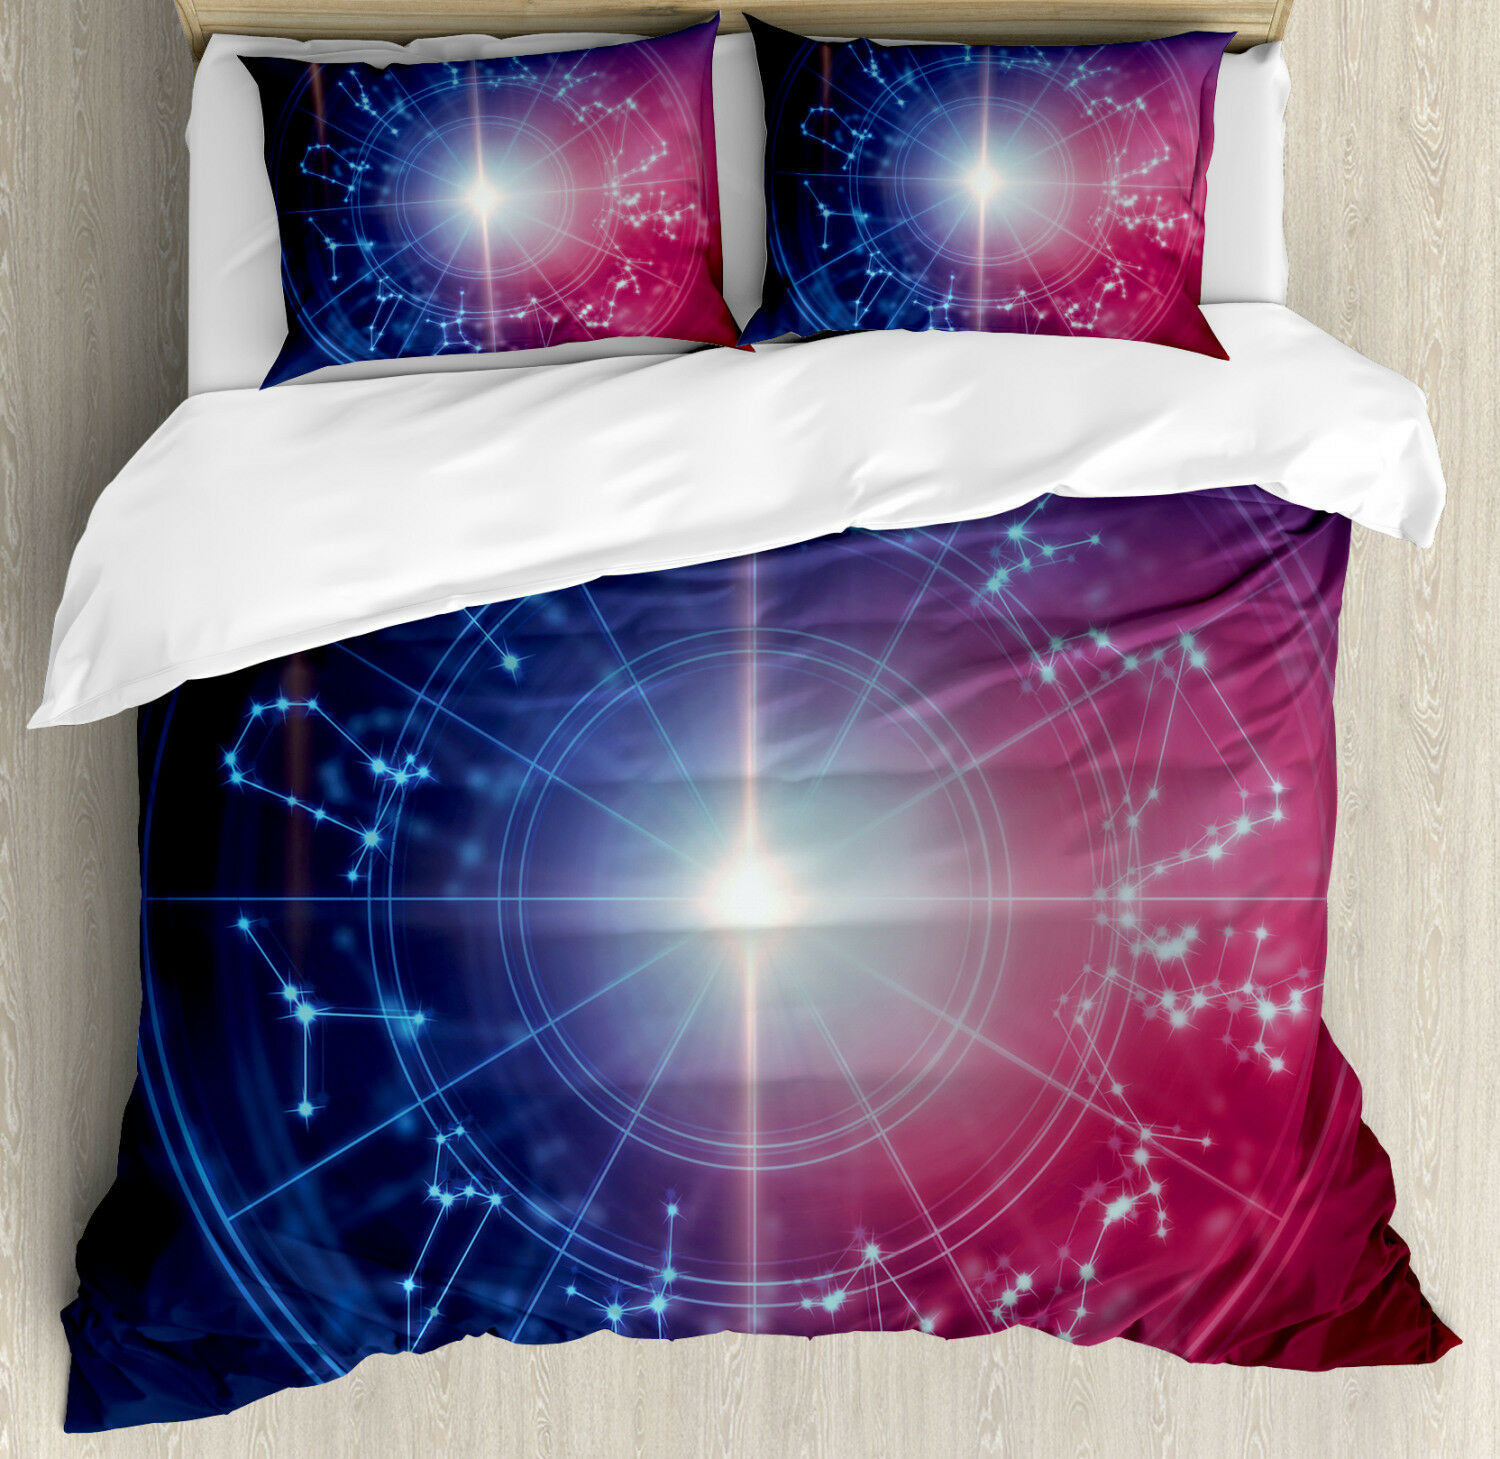 Astrology Duvet Cover Set with Pillow Shams Connected Dots Signs Print